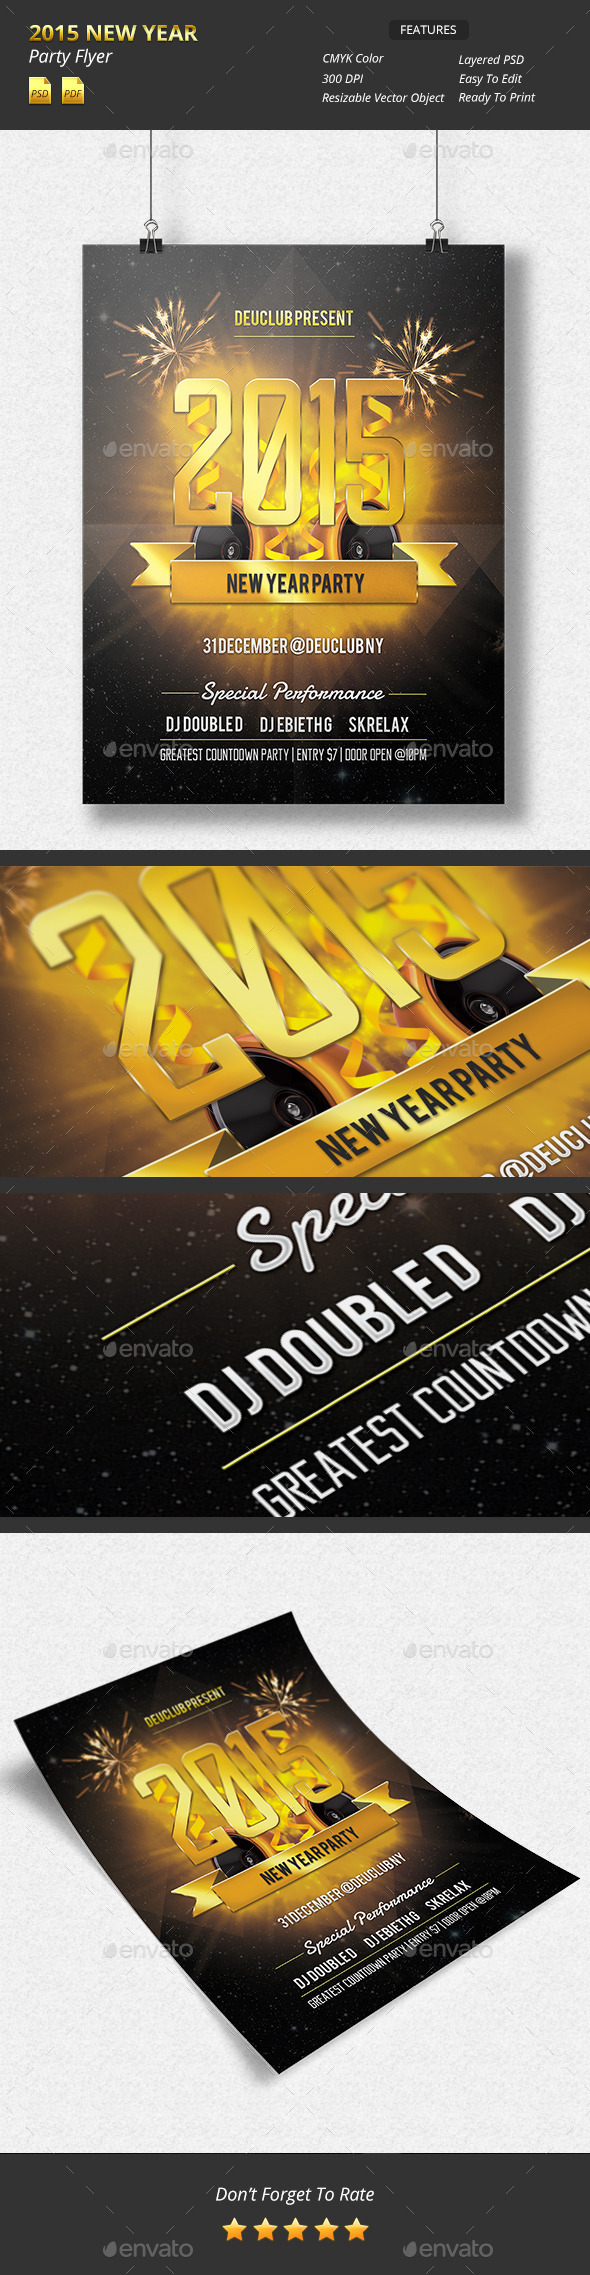 GraphicRiver 2015 New Year Party Flyer 9769027